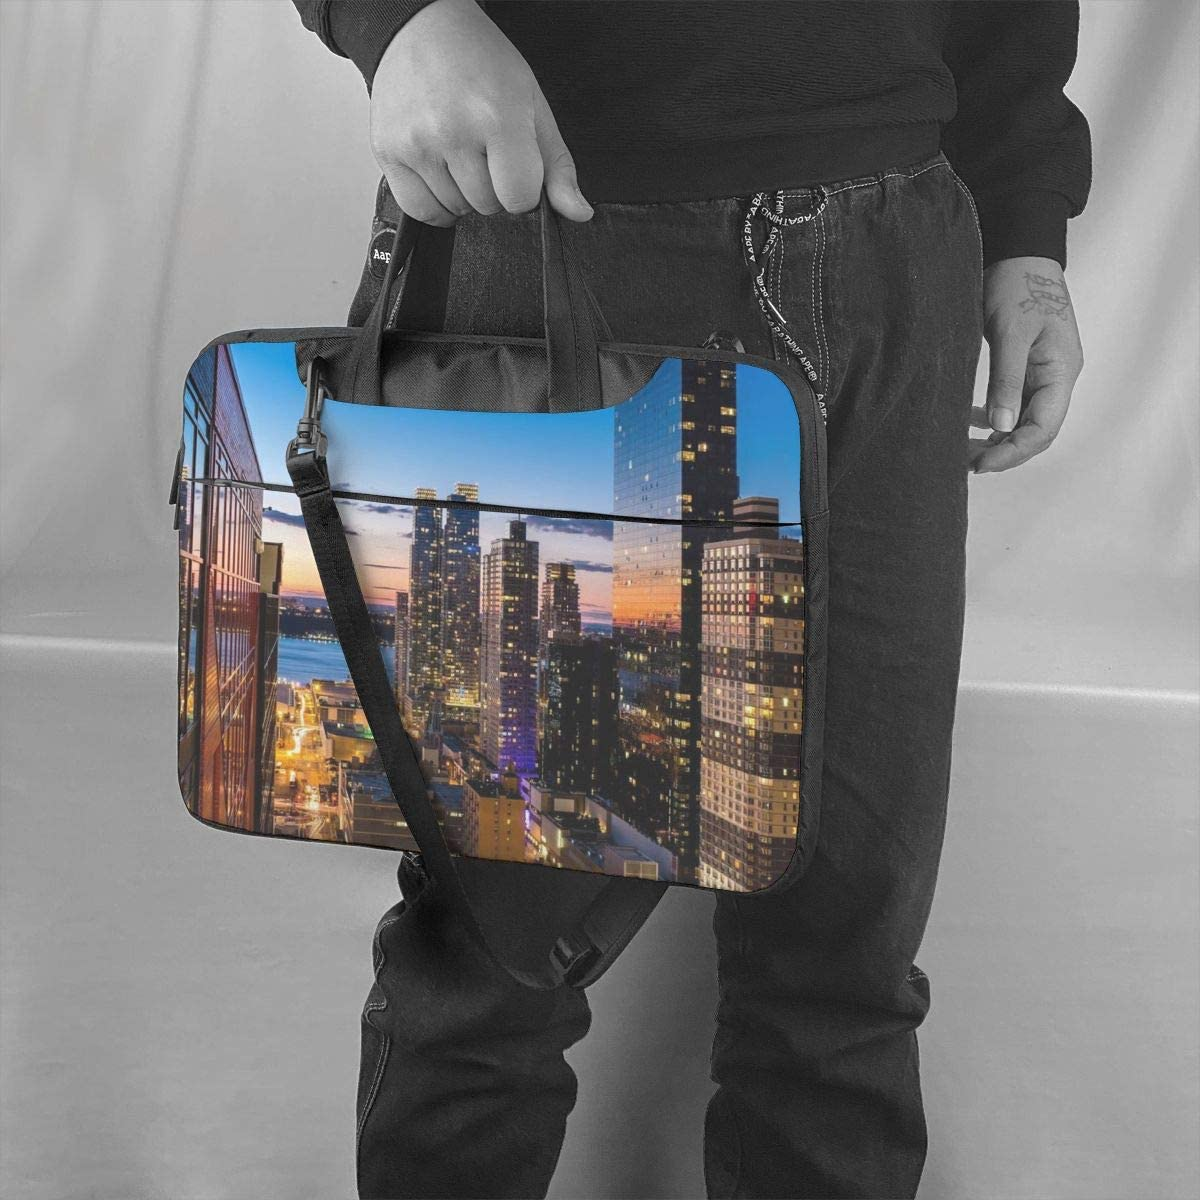 Shockproof Carrying Briefcase Sleeve with Organizer Pocket Waterproof Fabric Laptop Shoulder Bag New York City Notebook Sleeve Case Carrying Handle Compatible MacBook 15.6 Inch